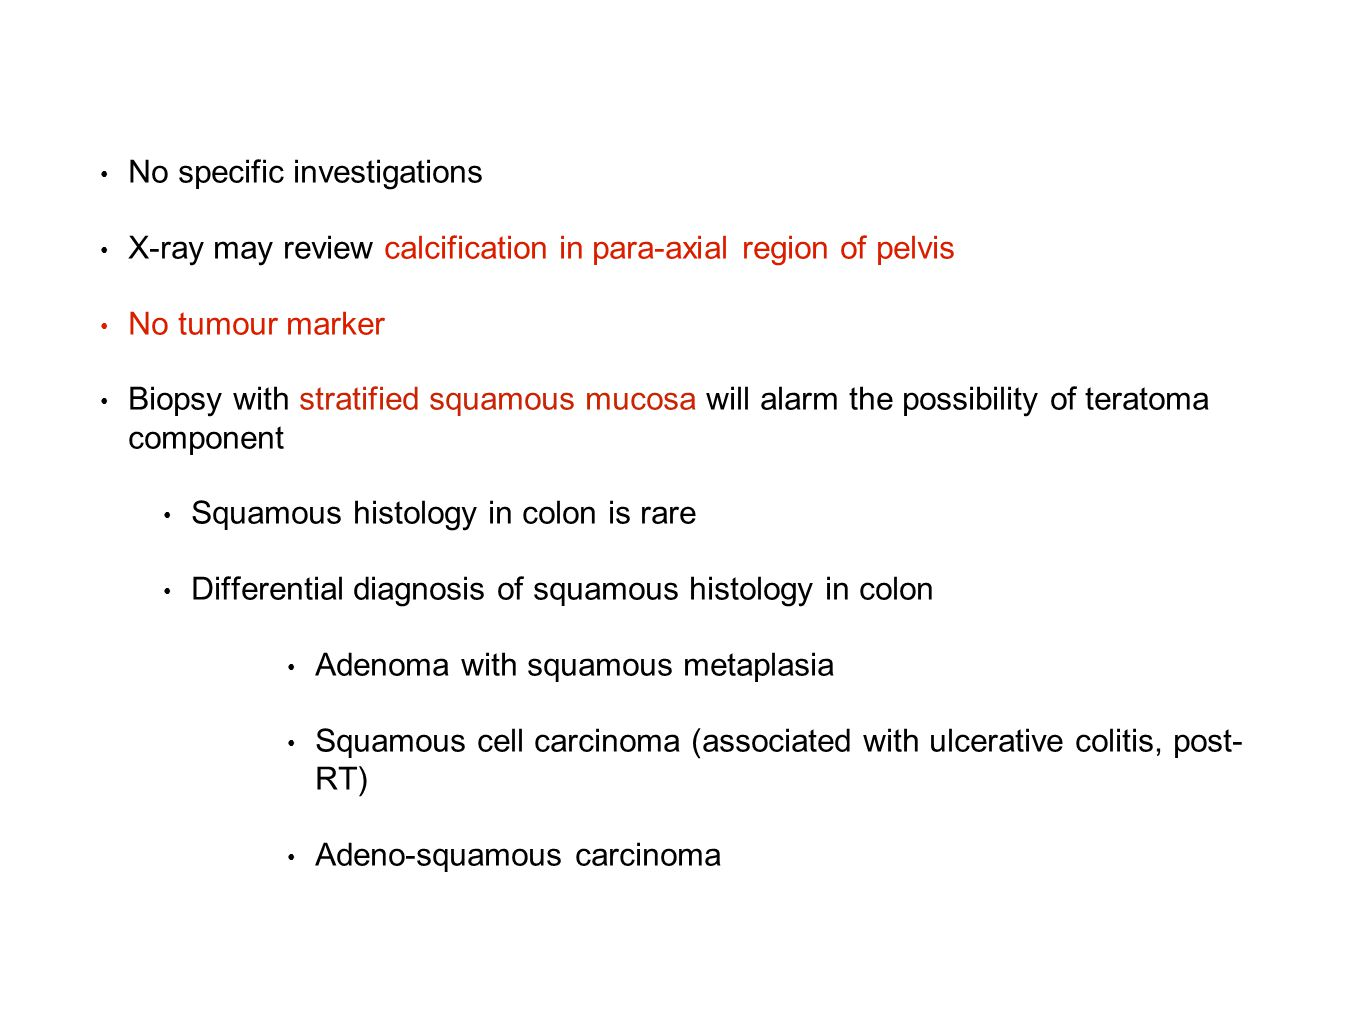 No specific investigations X-ray may review calcification in para-axial region of pelvis No tumour marker Biopsy with stratified squamous mucosa will alarm the possibility of teratoma component Squamous histology in colon is rare Differential diagnosis of squamous histology in colon Adenoma with squamous metaplasia Squamous cell carcinoma (associated with ulcerative colitis, post- RT) Adeno-squamous carcinoma